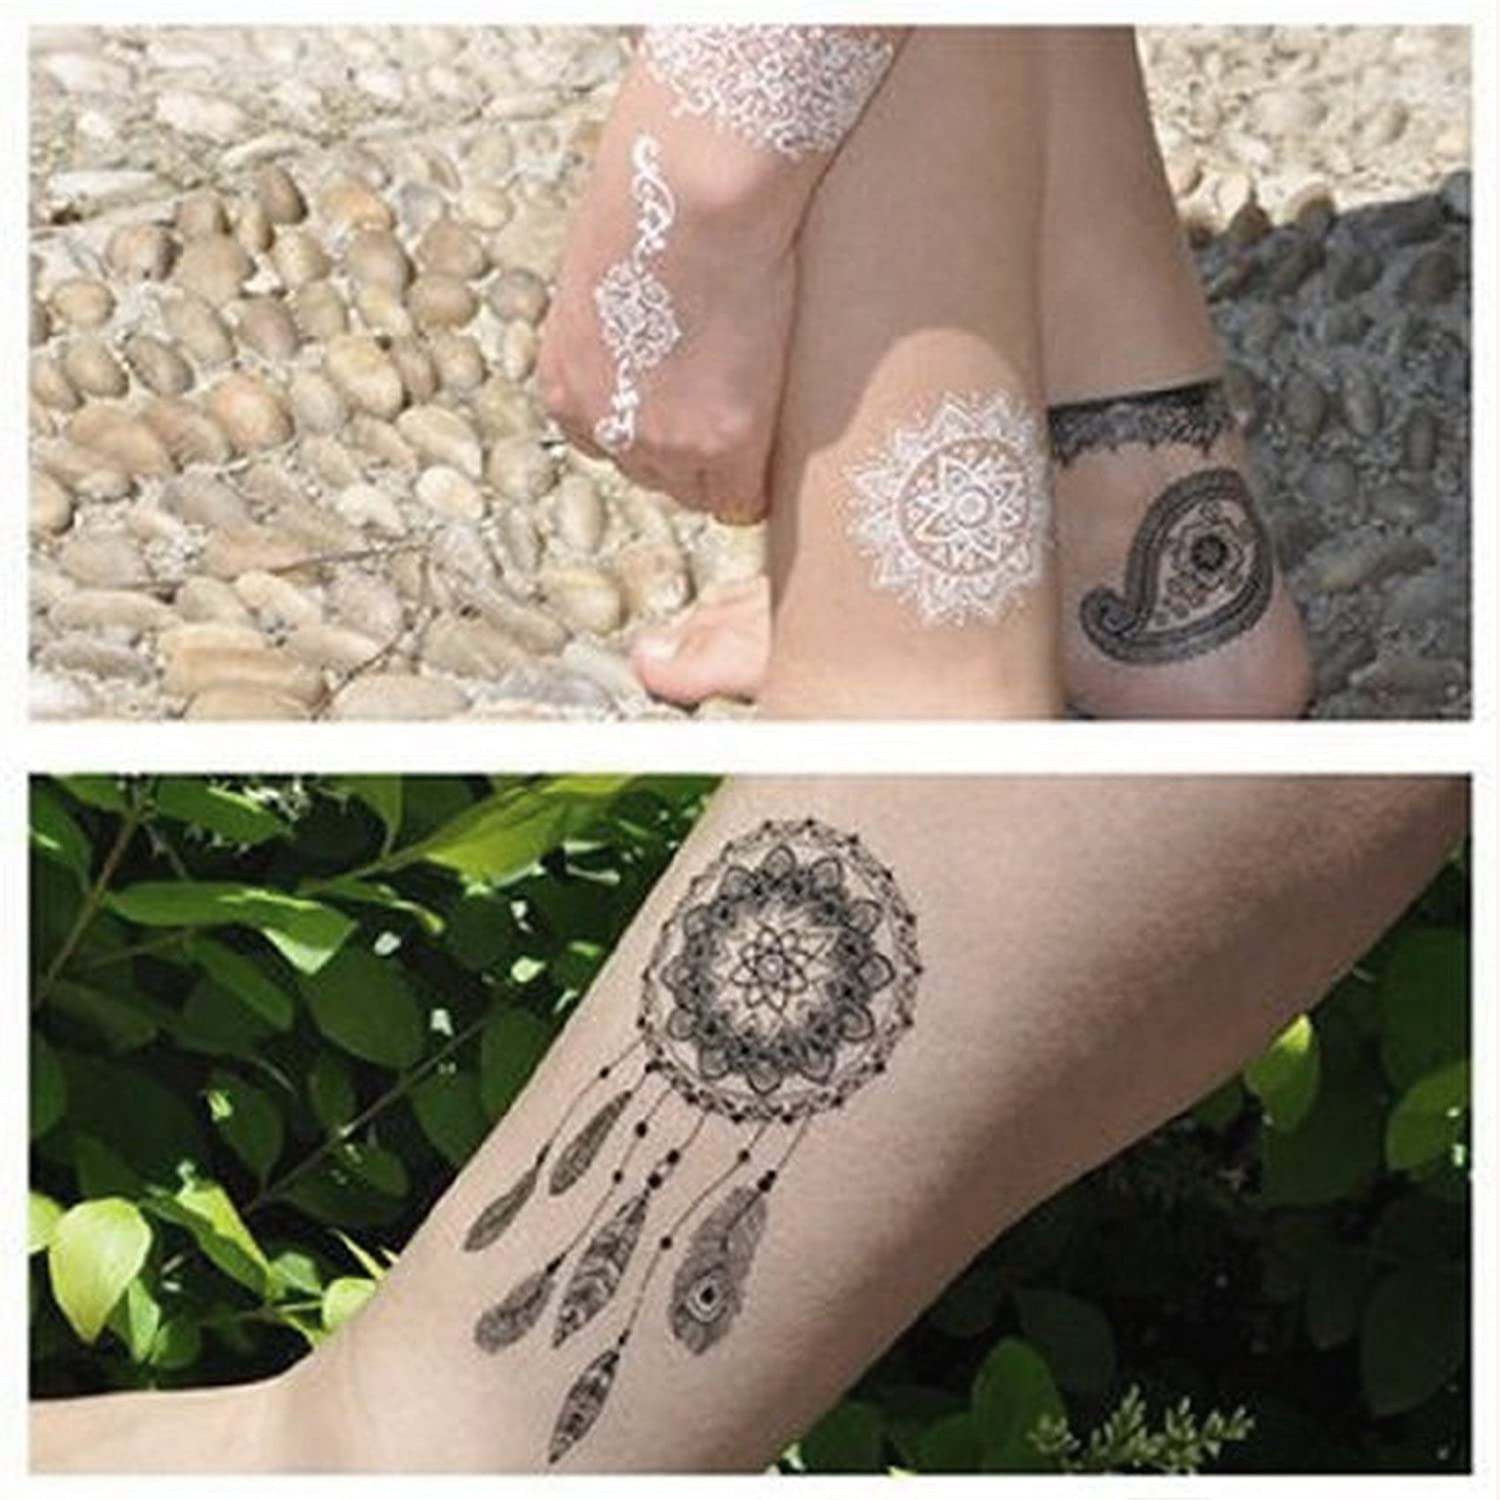 668dd6927 Amazon.com: Glamorstar Temporary Tattoo Stickers, Fashion Black Lace 4  Different Sheets Waterproof Body Art Tattoo Sticker for Women, Teens &  Girls (A): ...